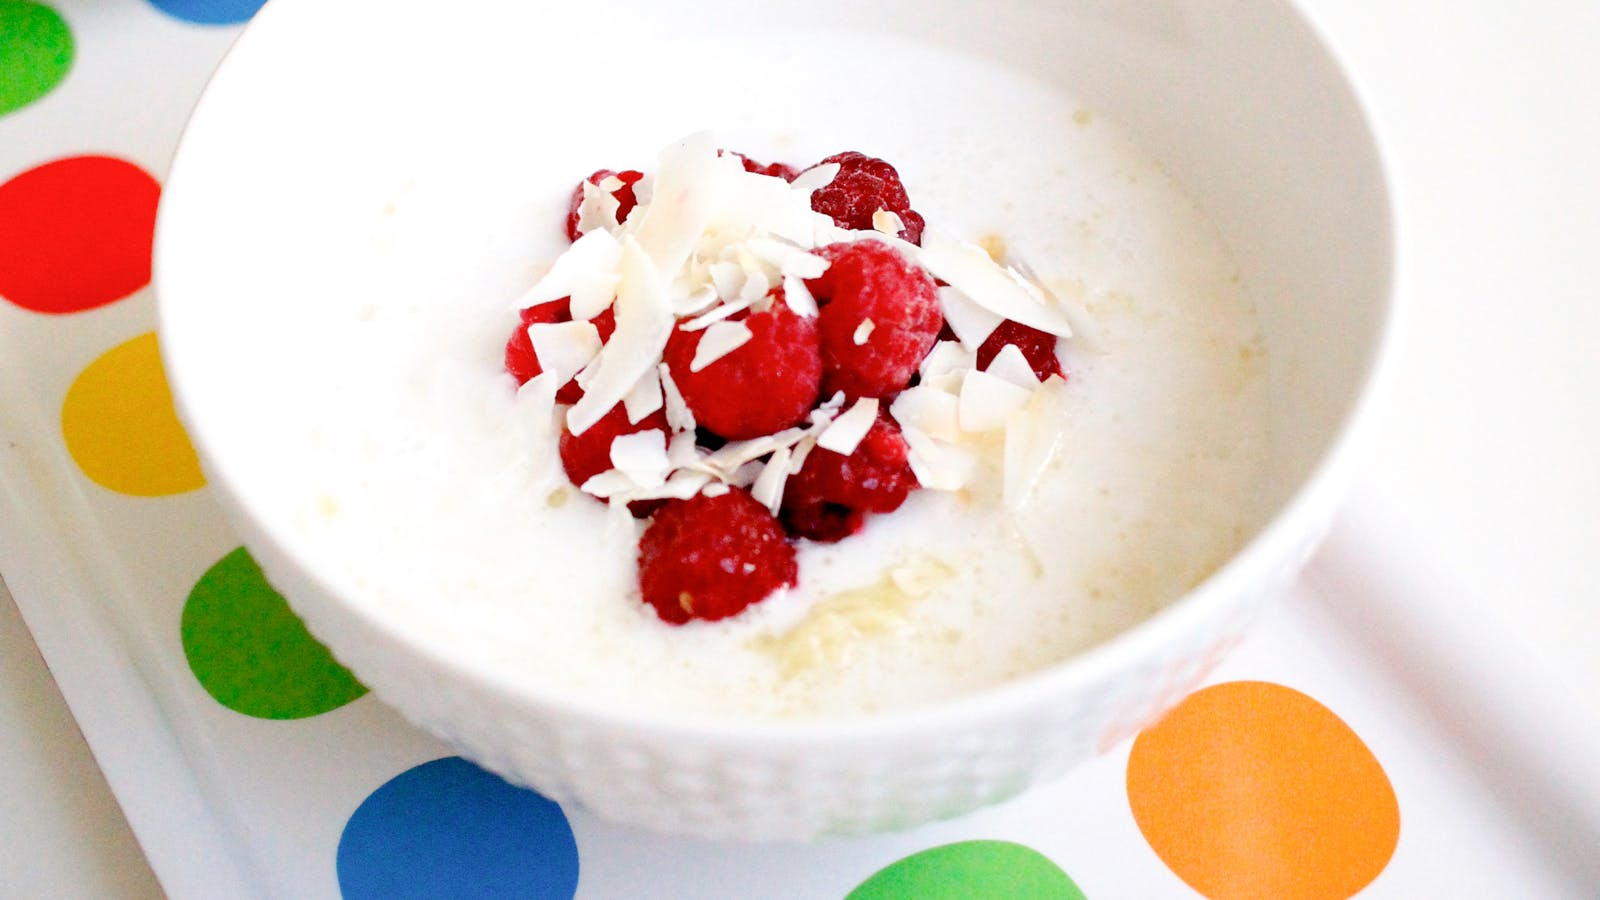 Coconut porridge